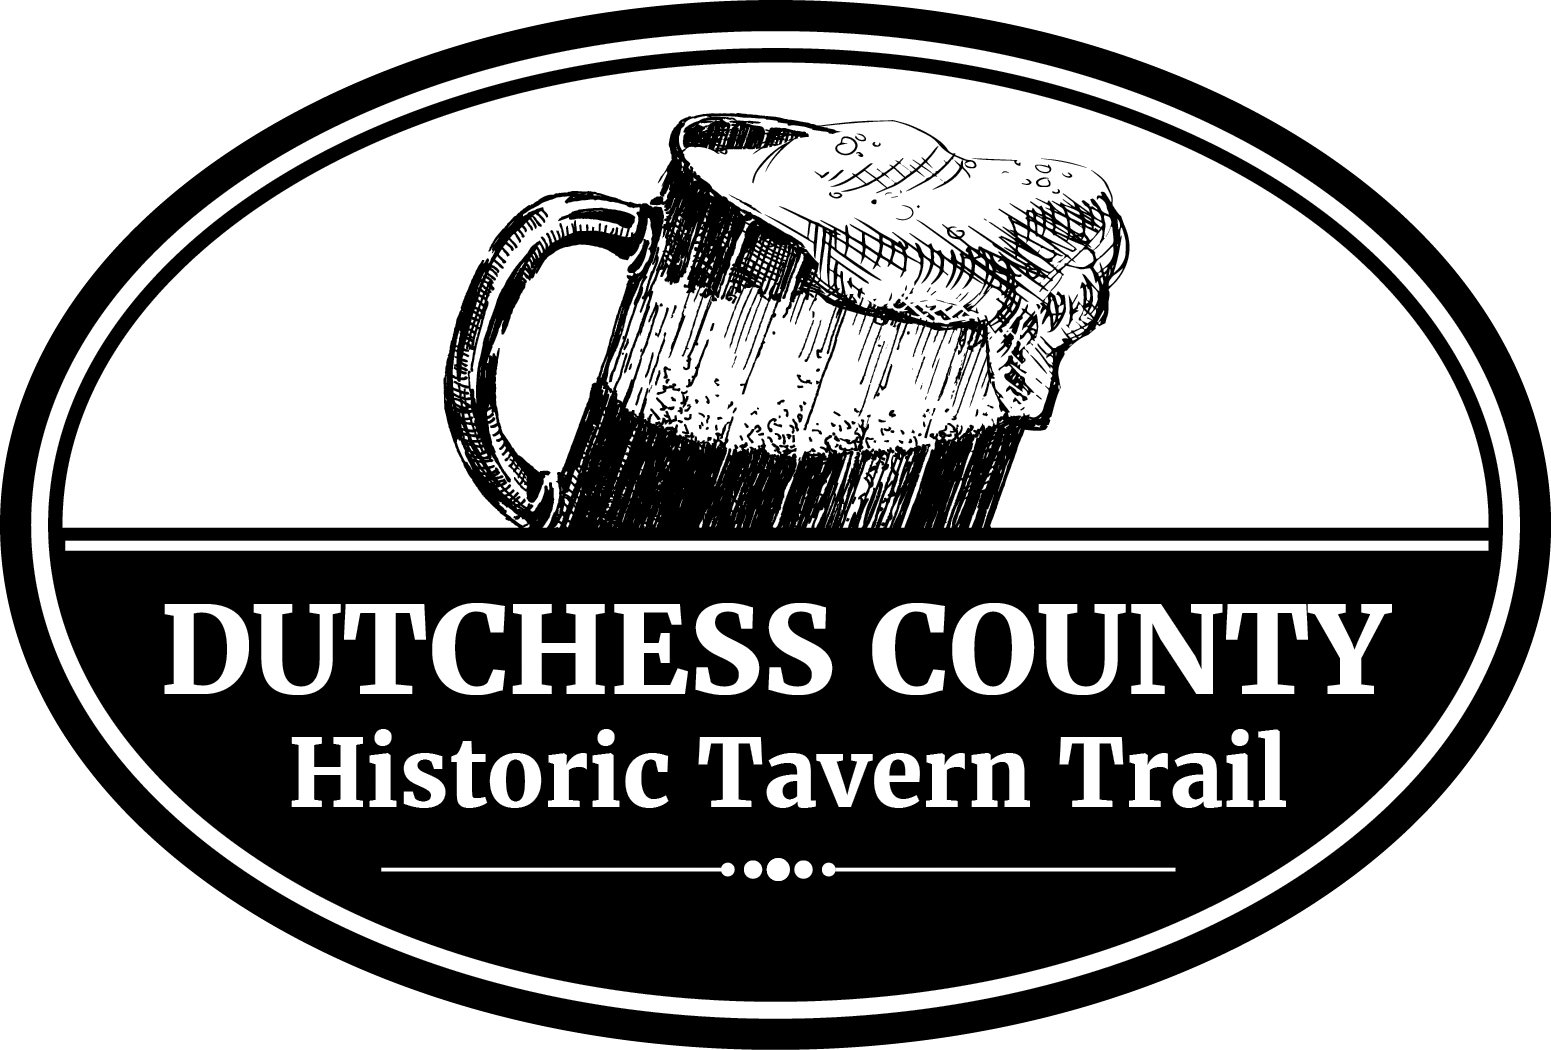 Dutchess County 2018 Historic Tavern Trail series continues this week at the Tabor-Wing House, located at 3128 NY Route 22 in Dover Plains, on Friday, May 11th, at 6:30 p.m.